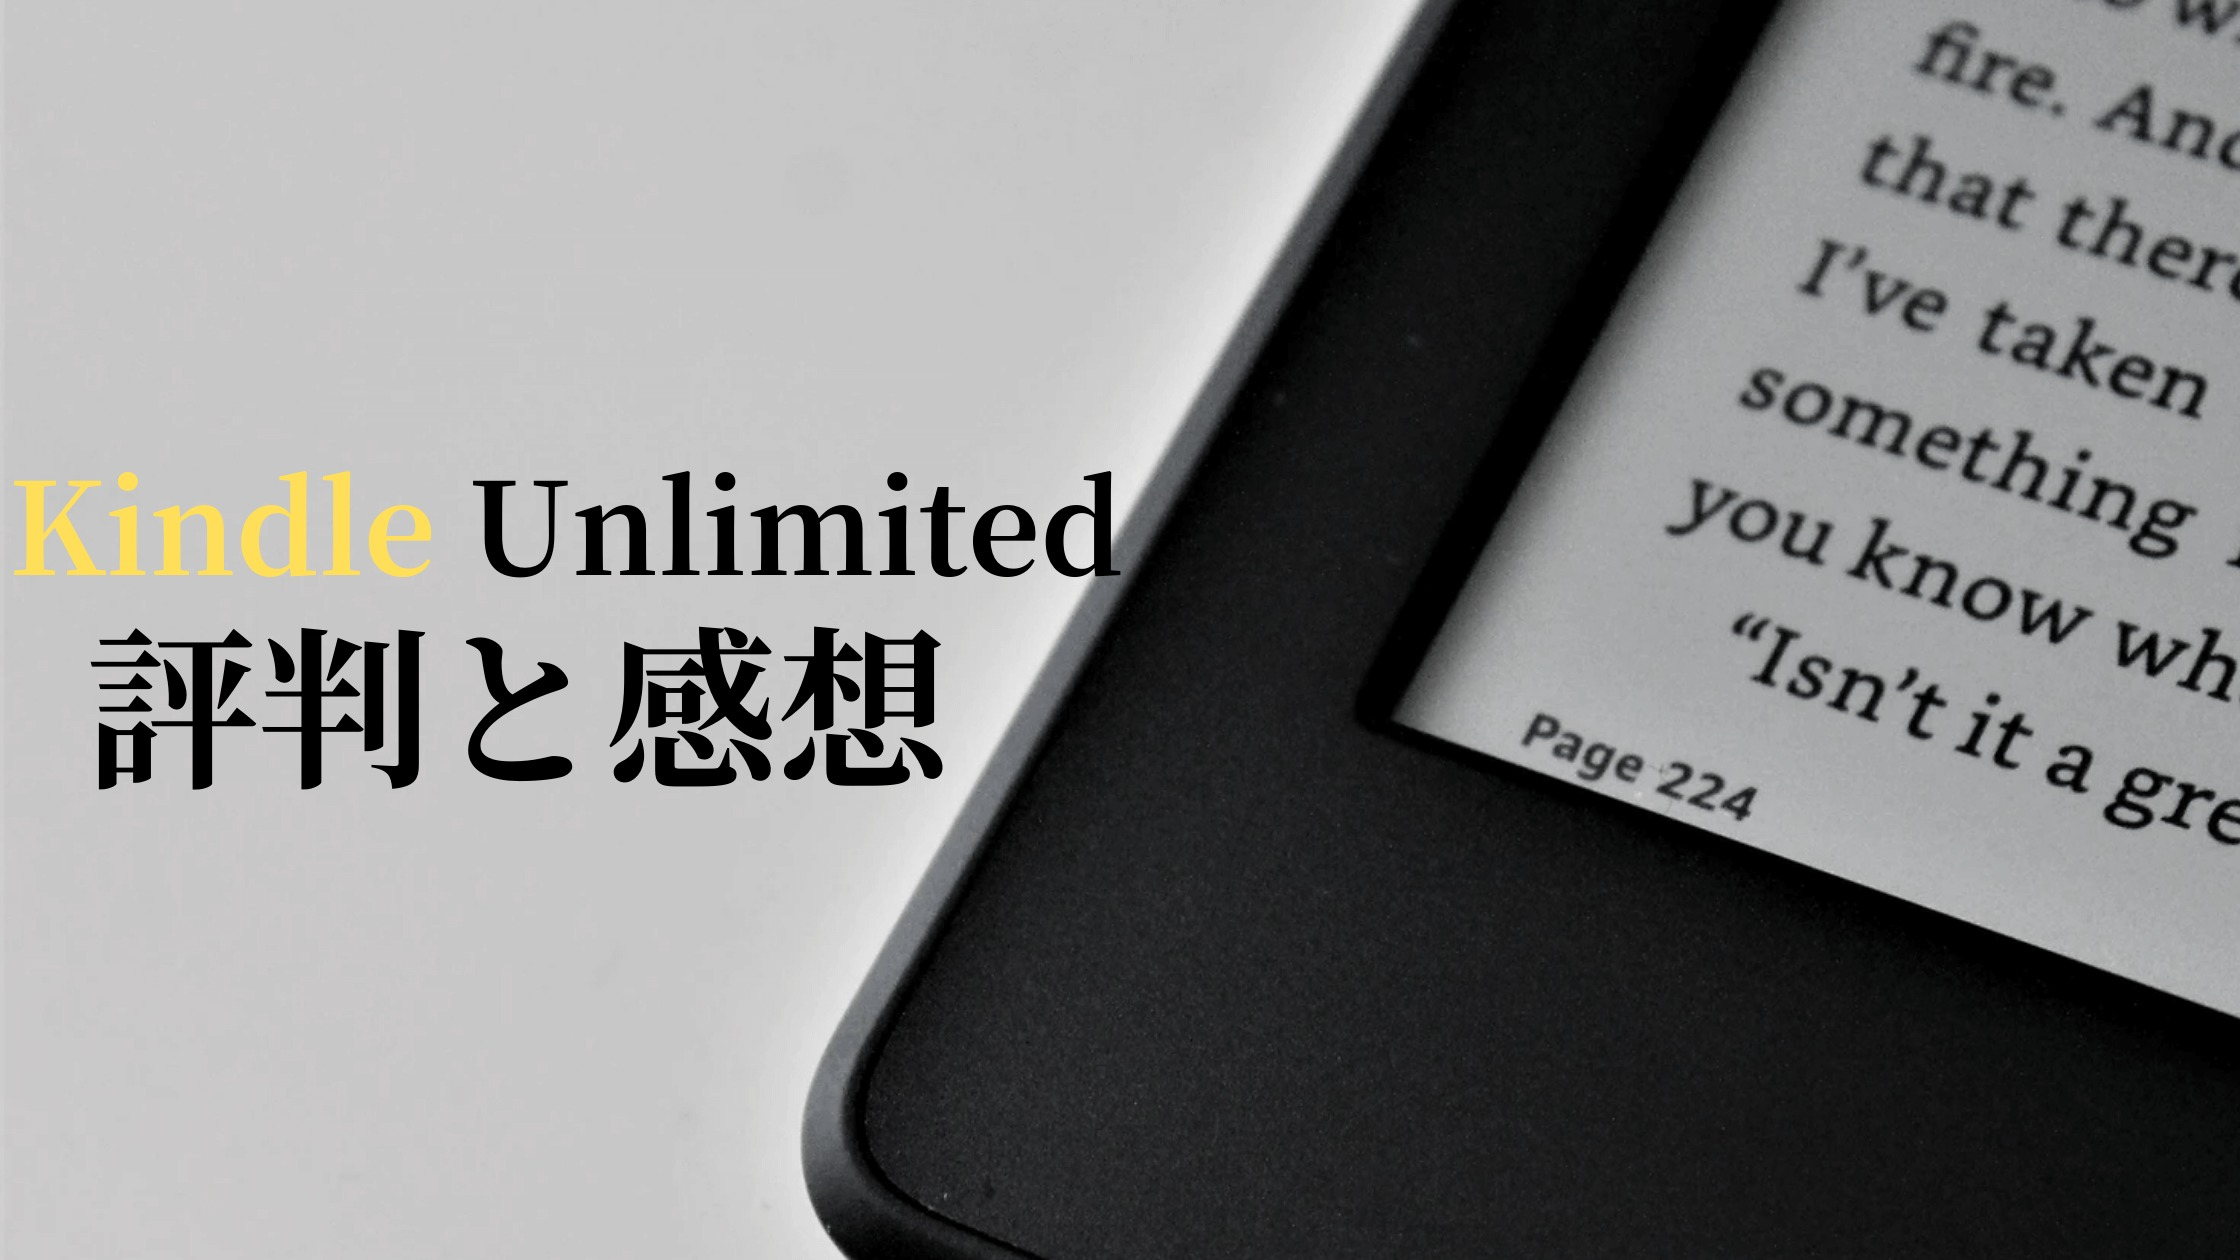 Kindle Unlimitedの評判